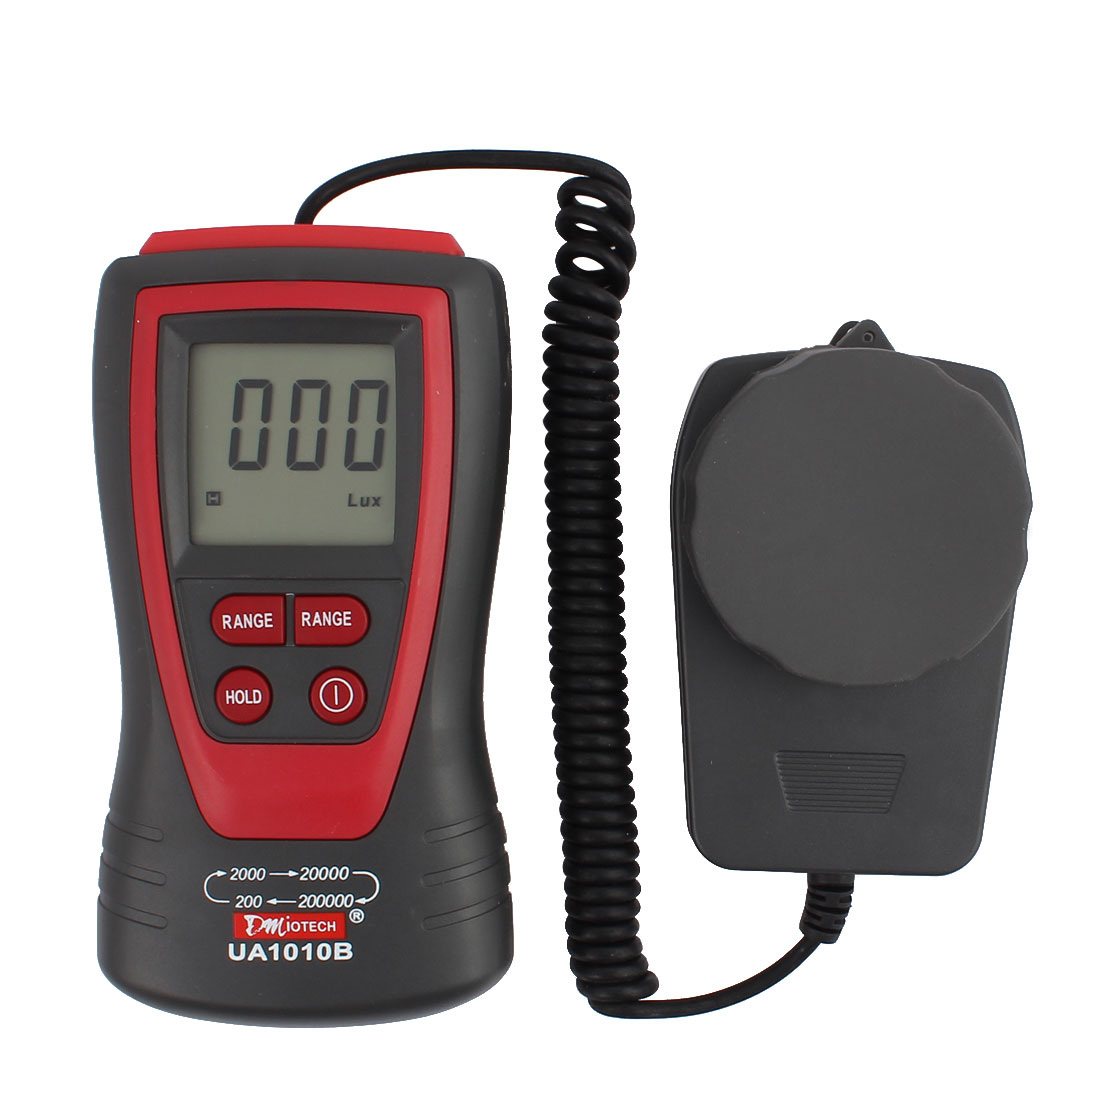 200,000 Lux Digital Light Meter Luxmeter Luminometer Photometer High Accuracy LCD Display